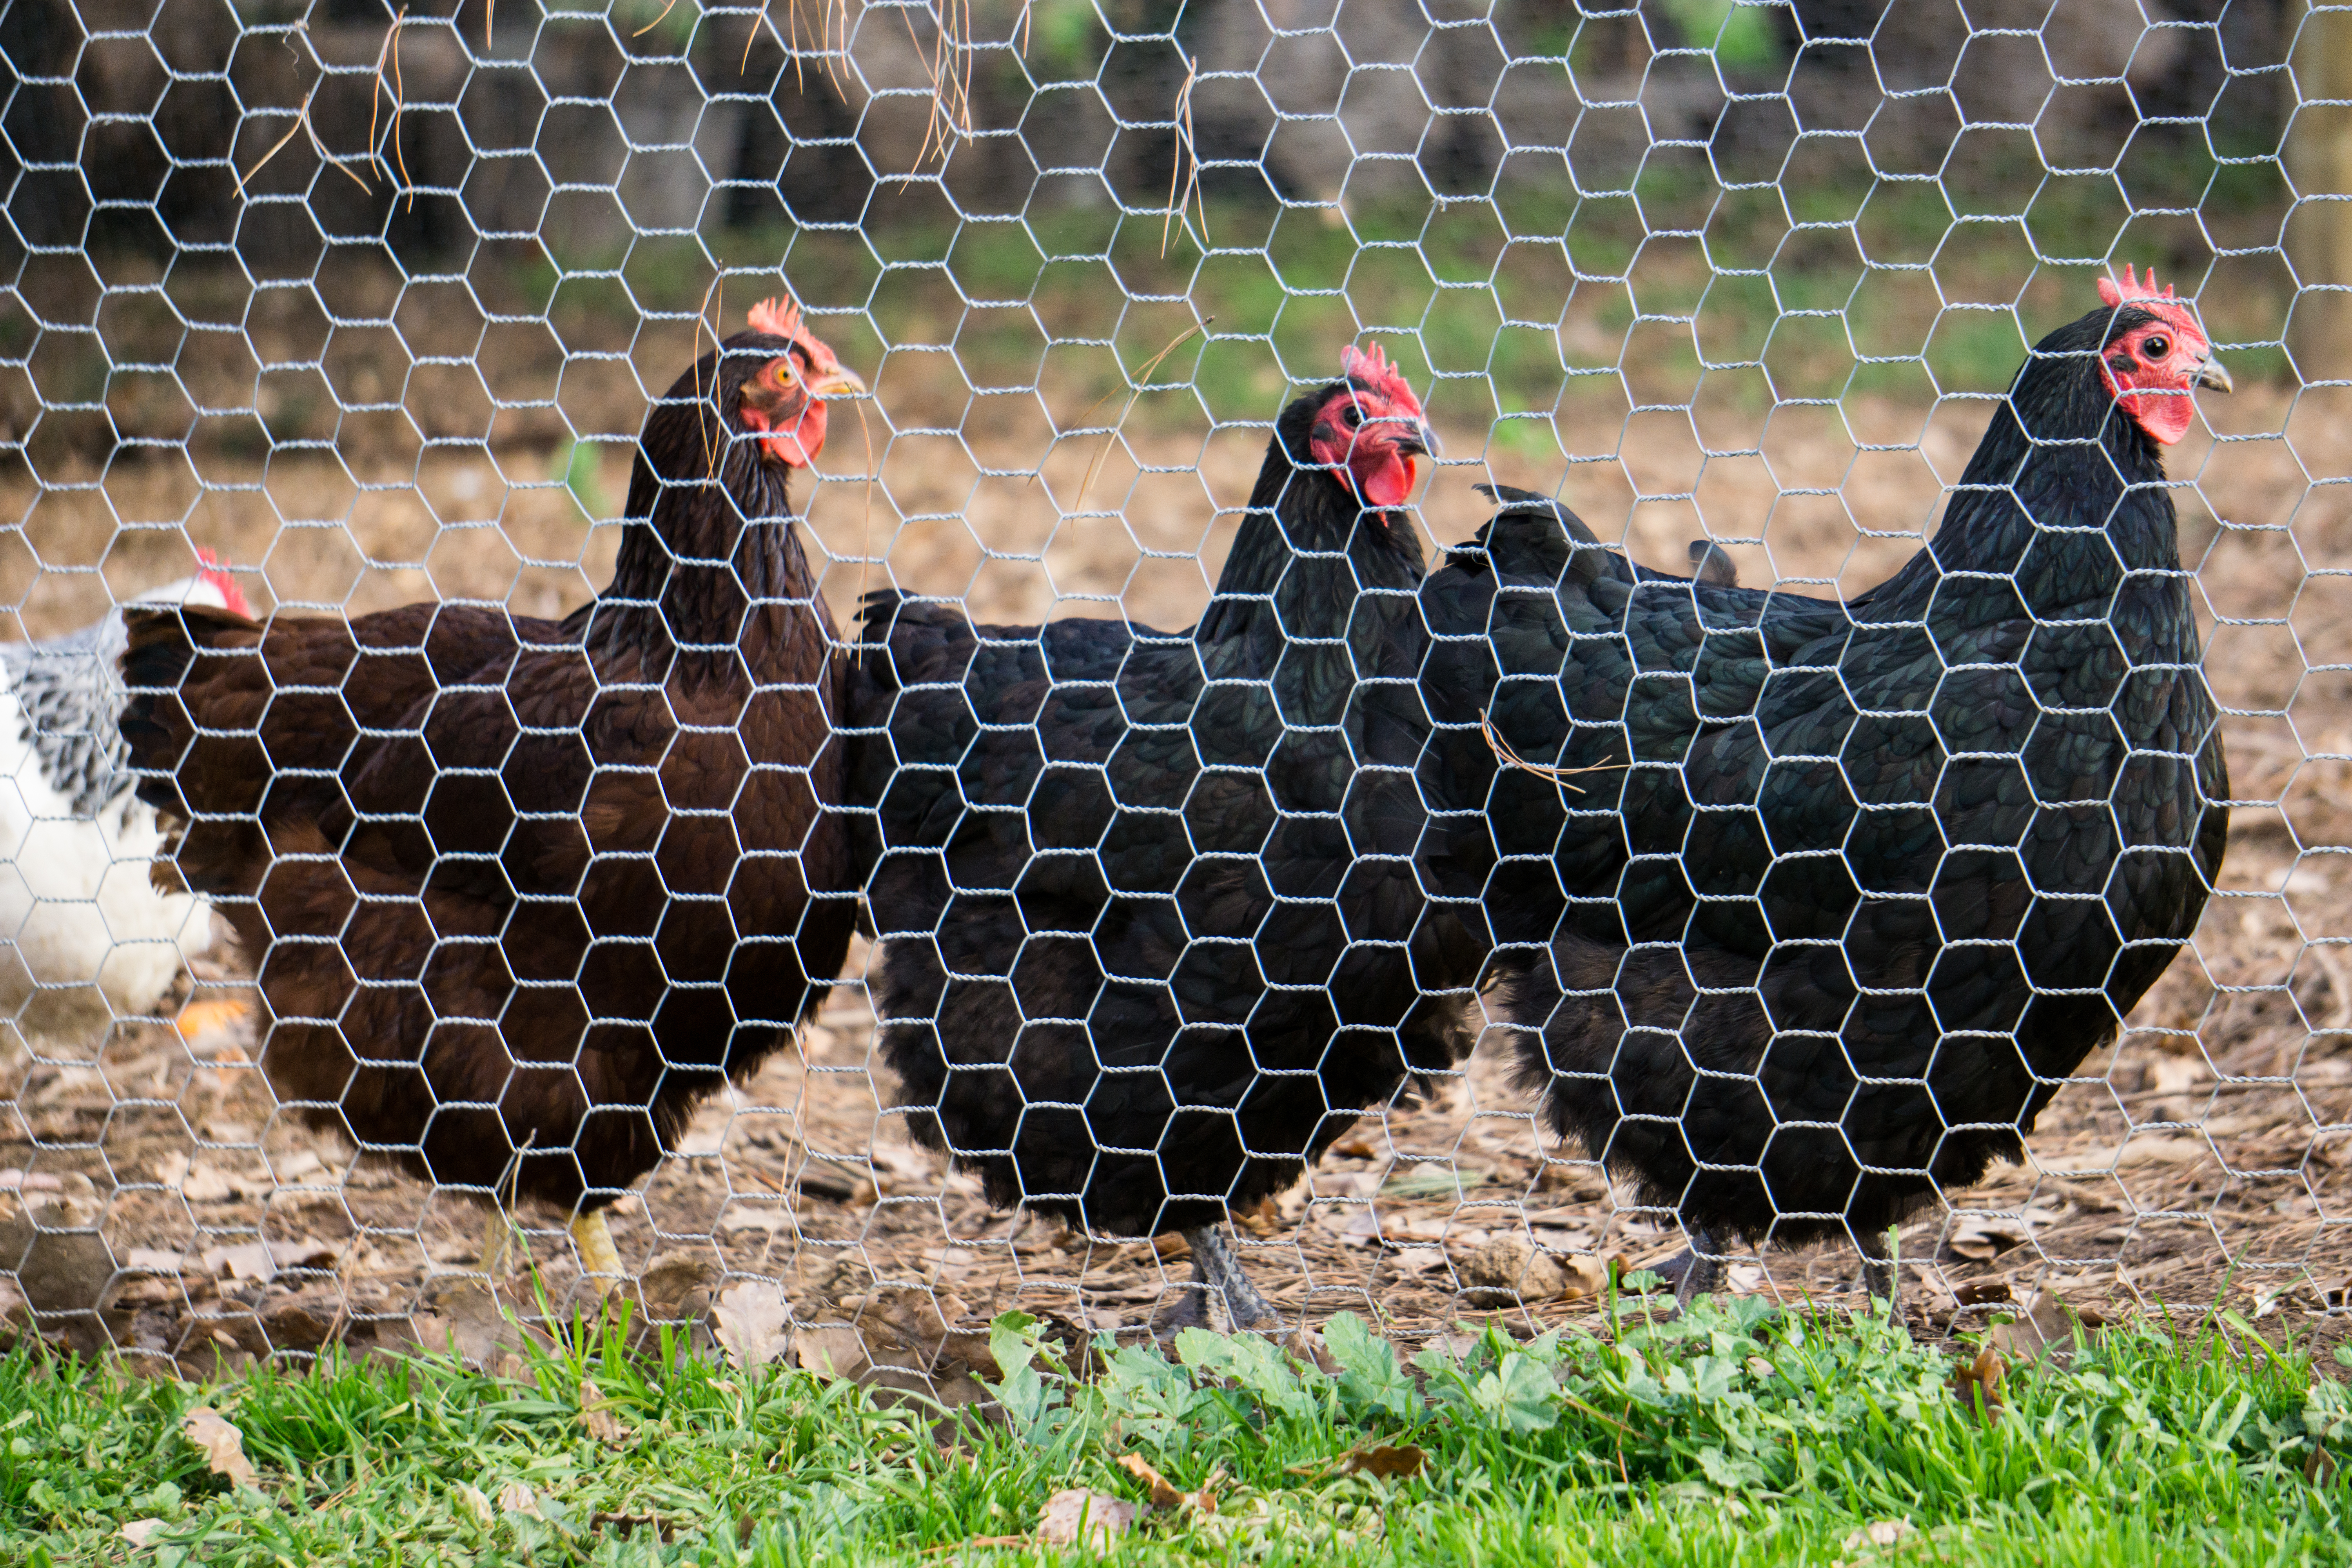 Three black hens standing in a row behind a wire fence